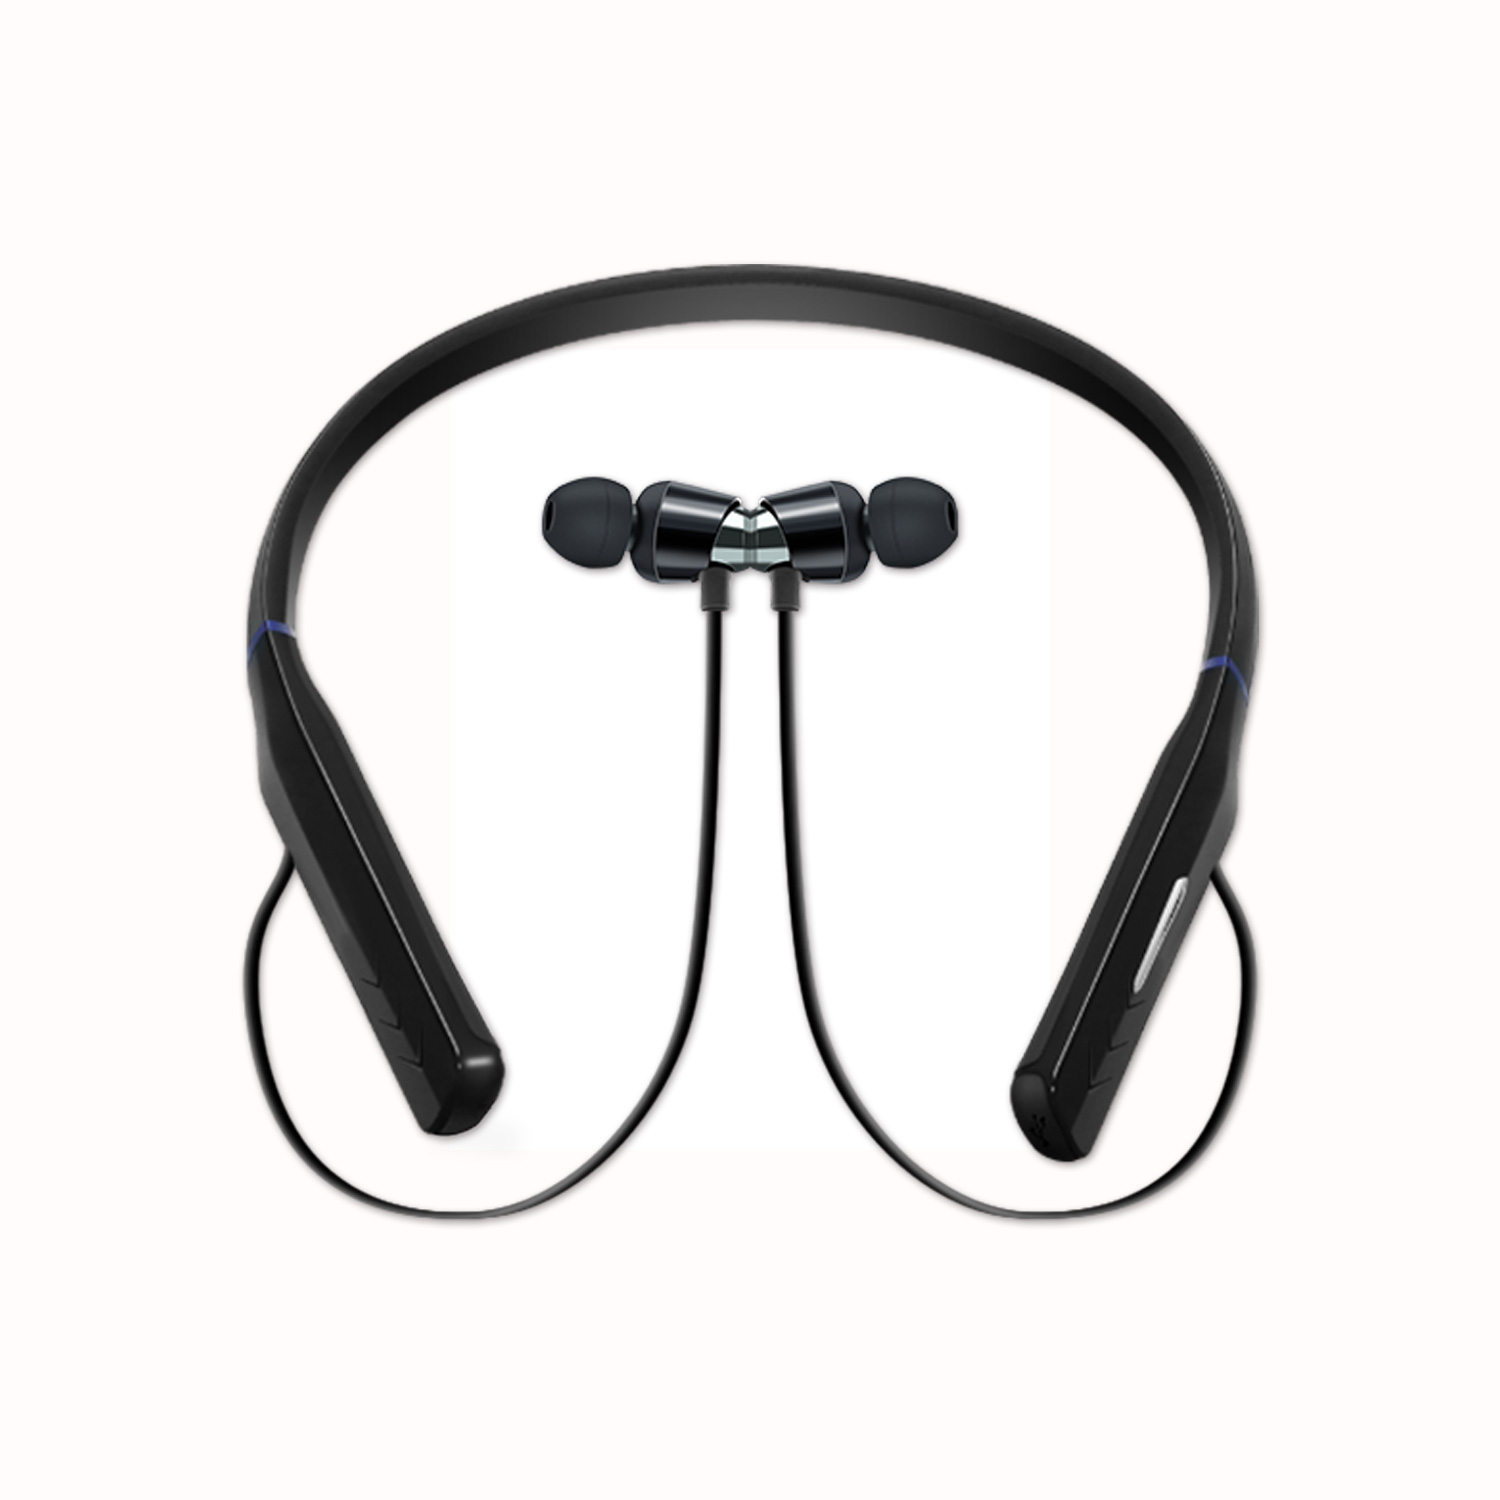 JH-V660 bluetooth headphone neckband